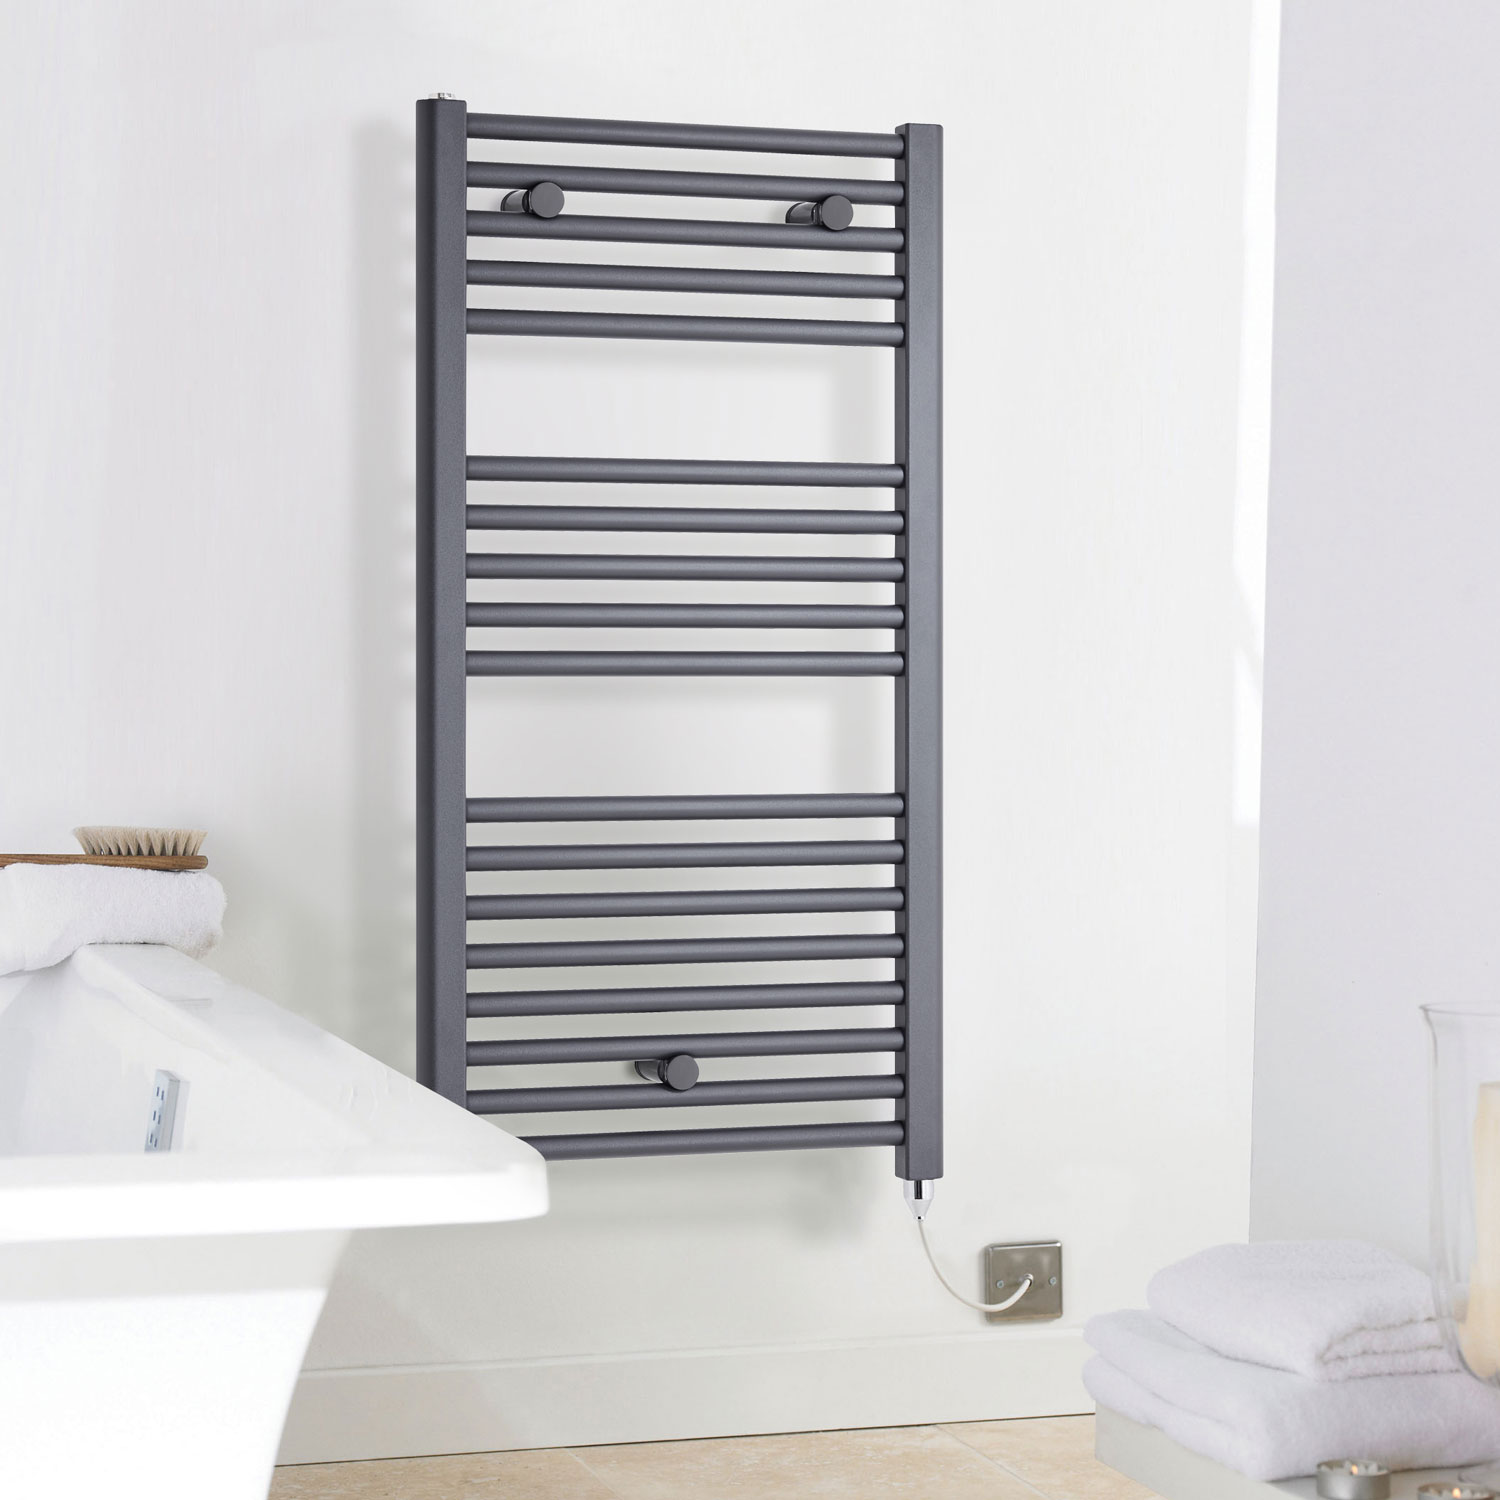 Premier Electric Heated Towel Rail 720mm H x 400mm W Anthracite